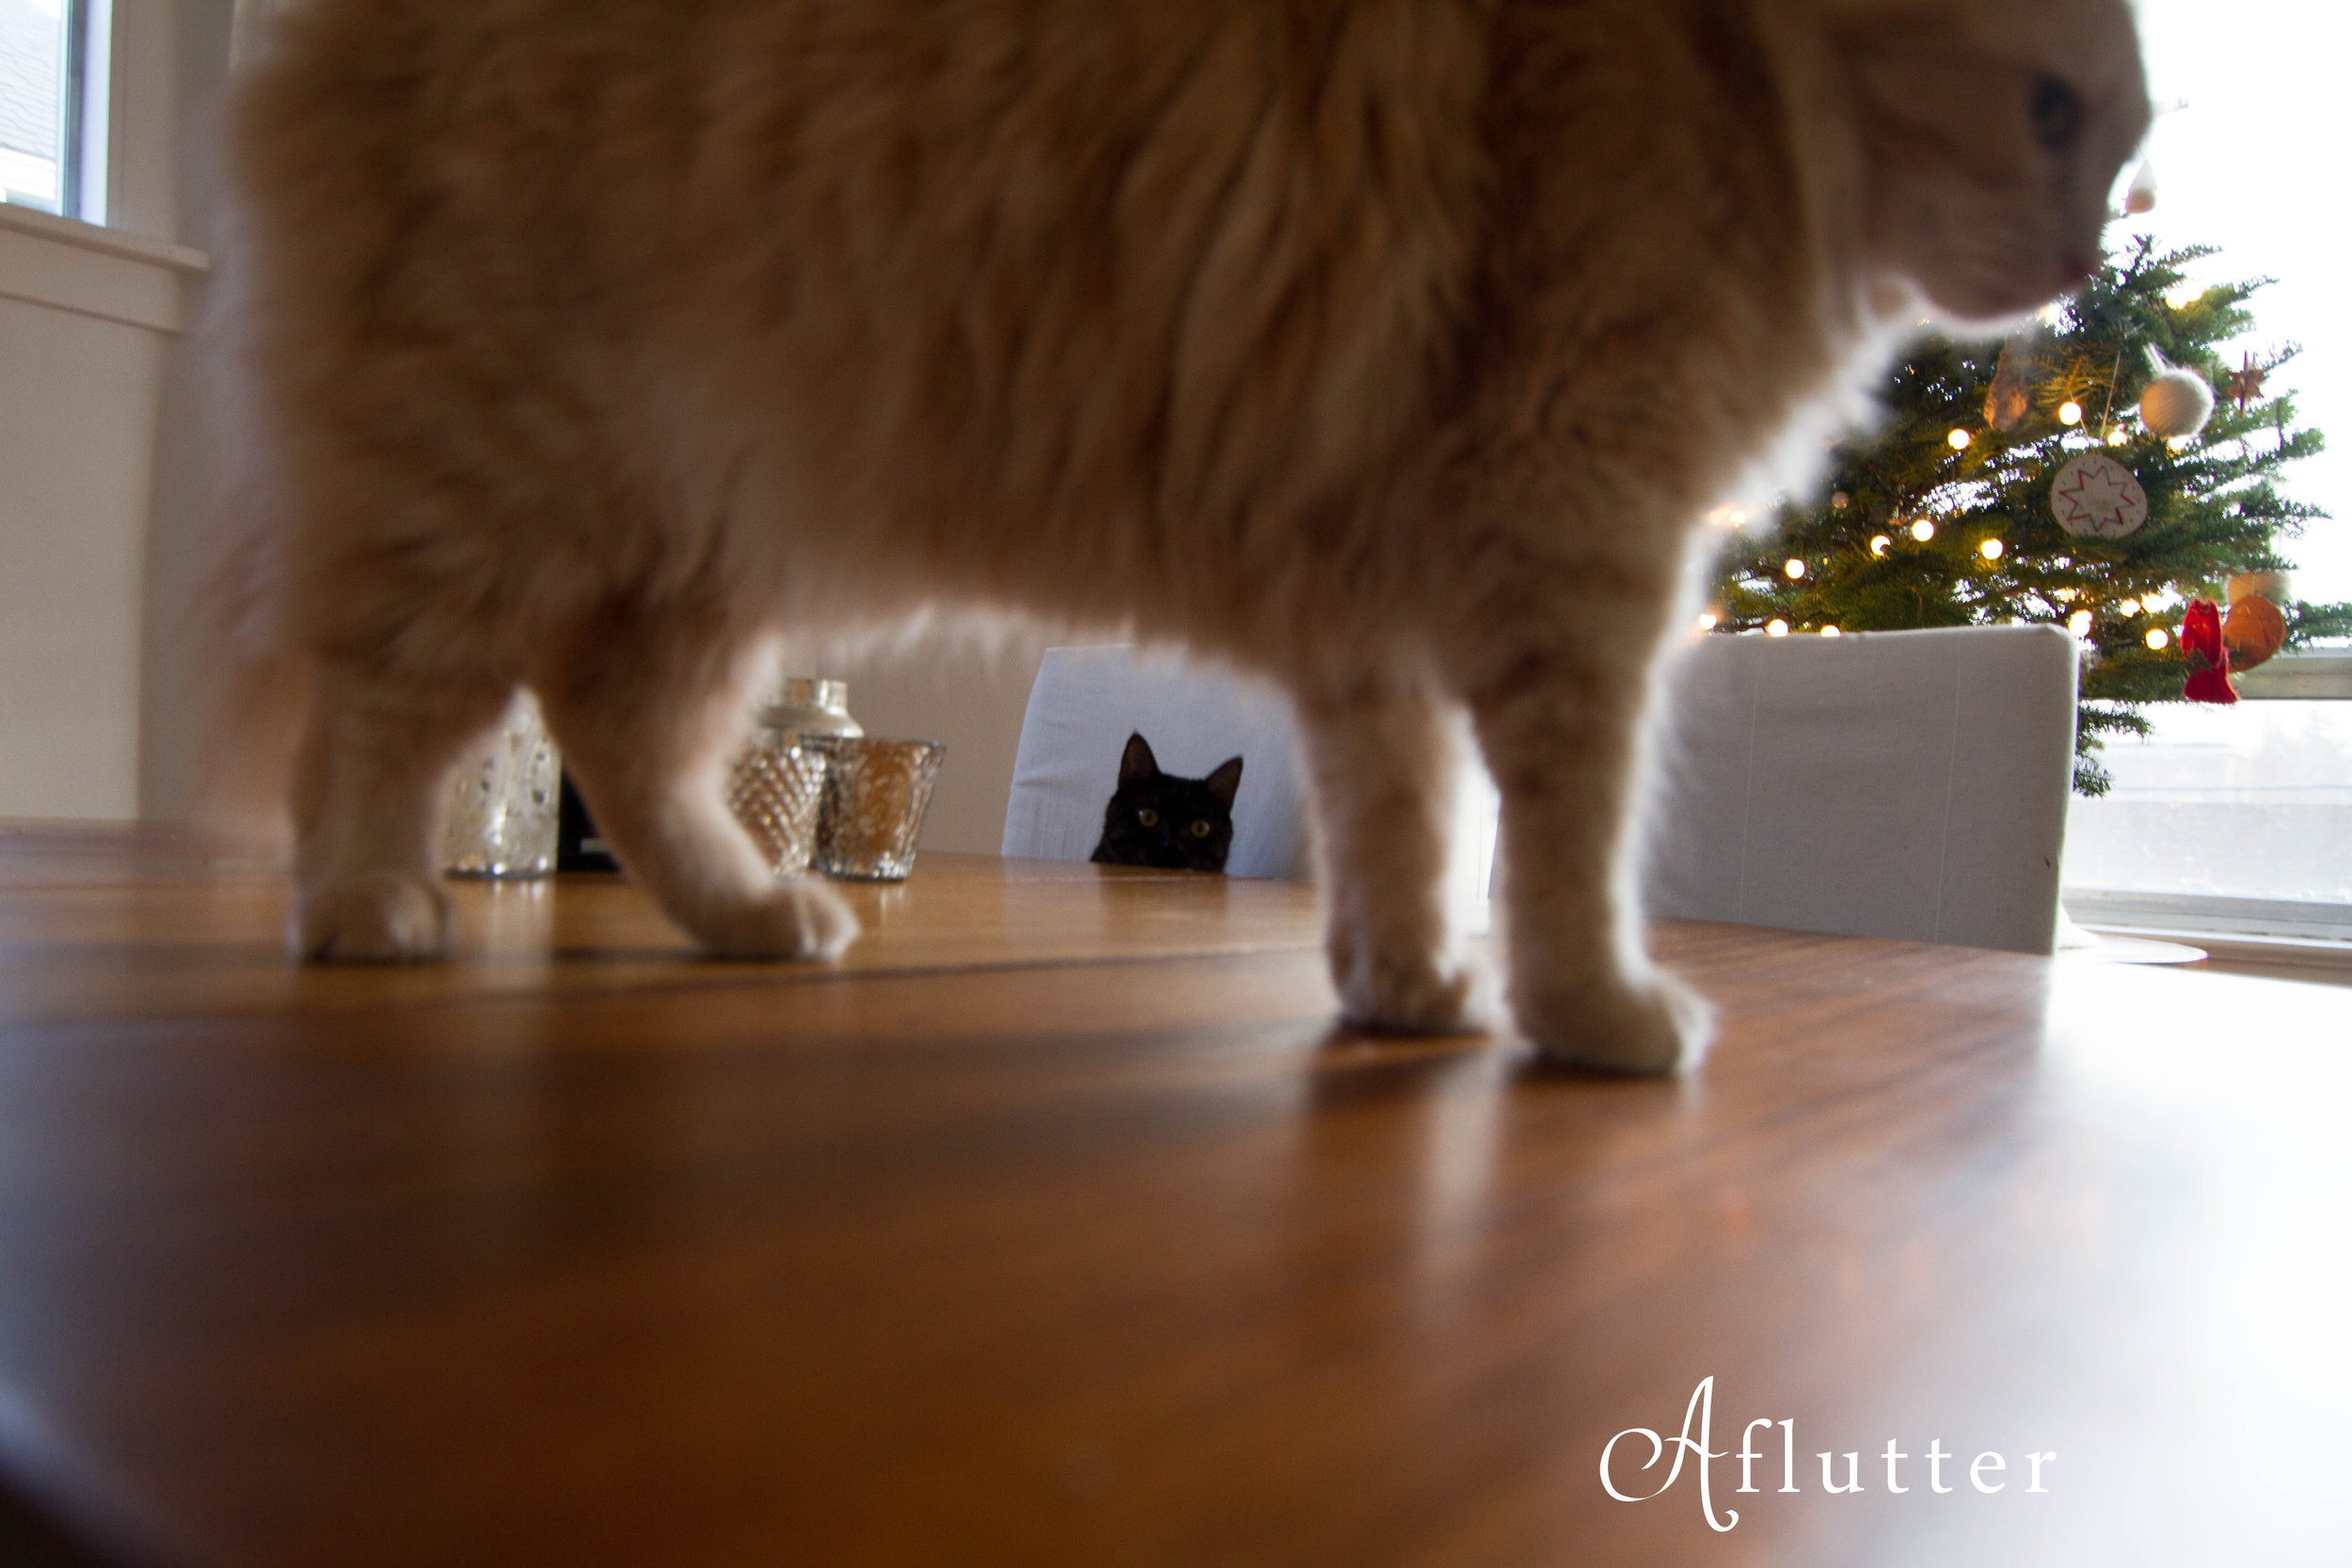 Christmas-kitties-1-of-1.jpg